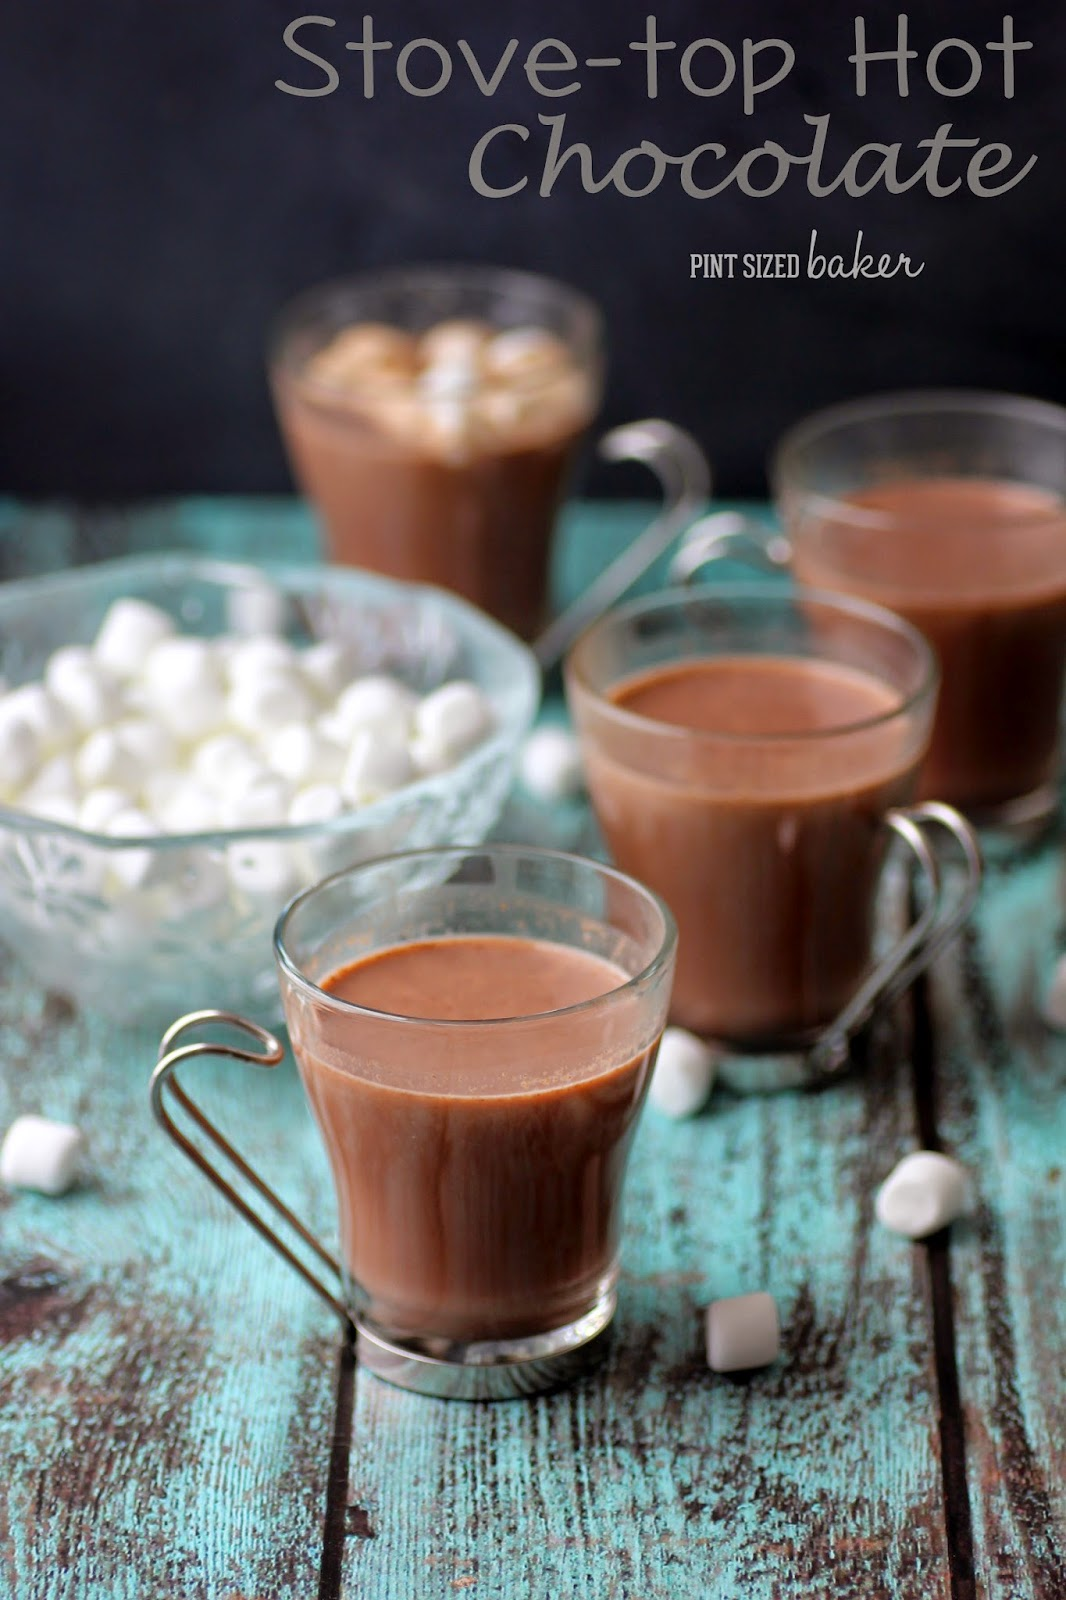 Come in from the cold and make a big batch of this Stove top Hot Chocolate! It's simply the best!